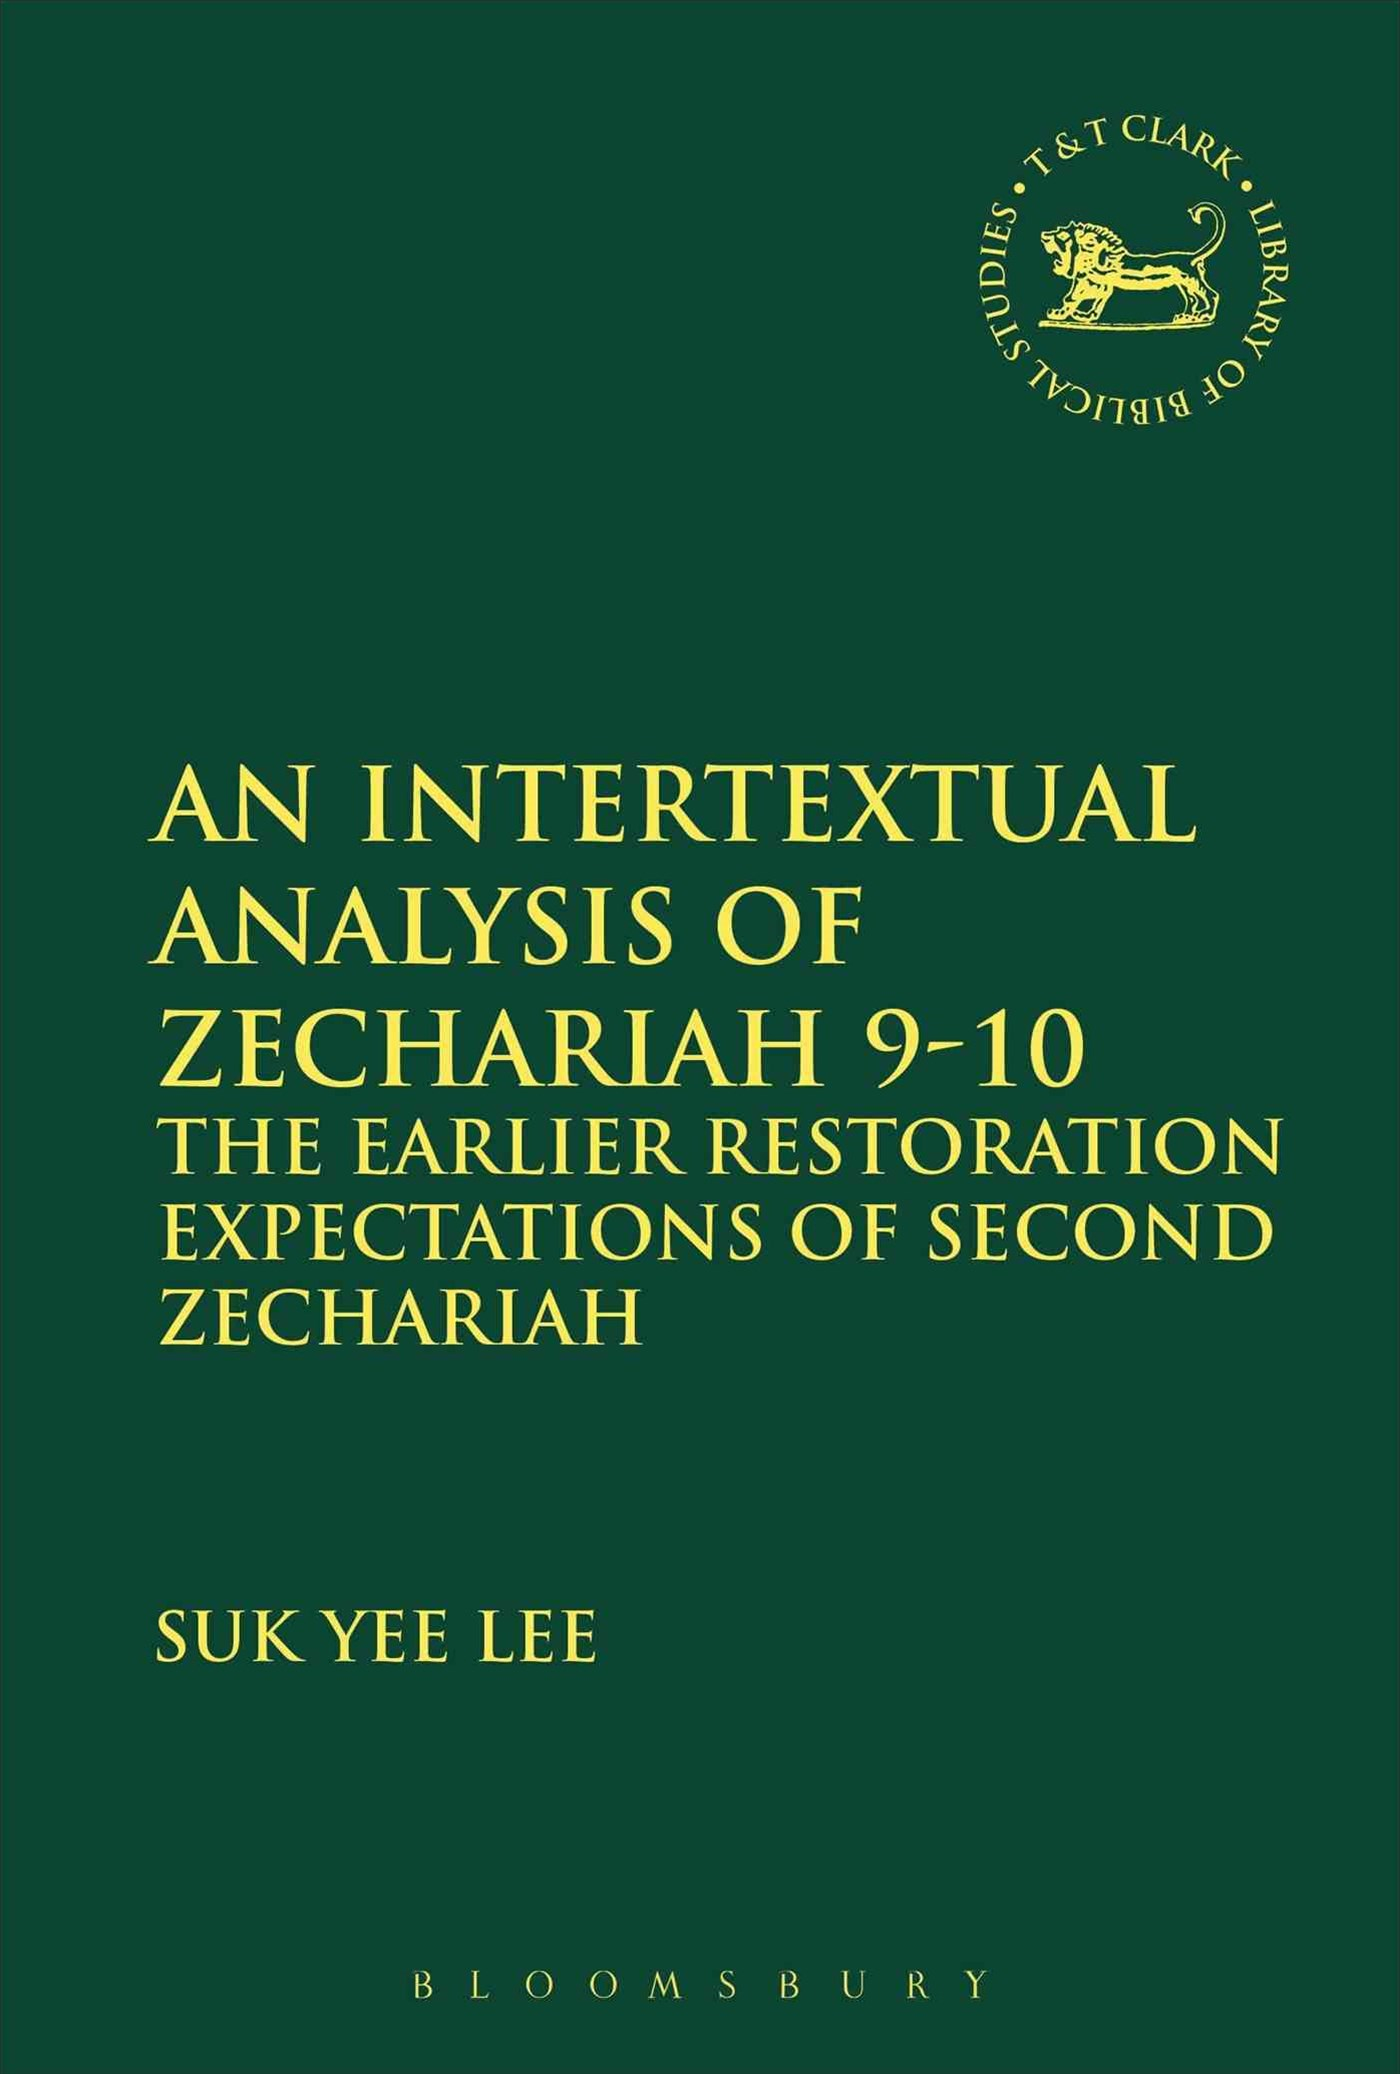 Intertextual Analysis of Zechariah 9-10